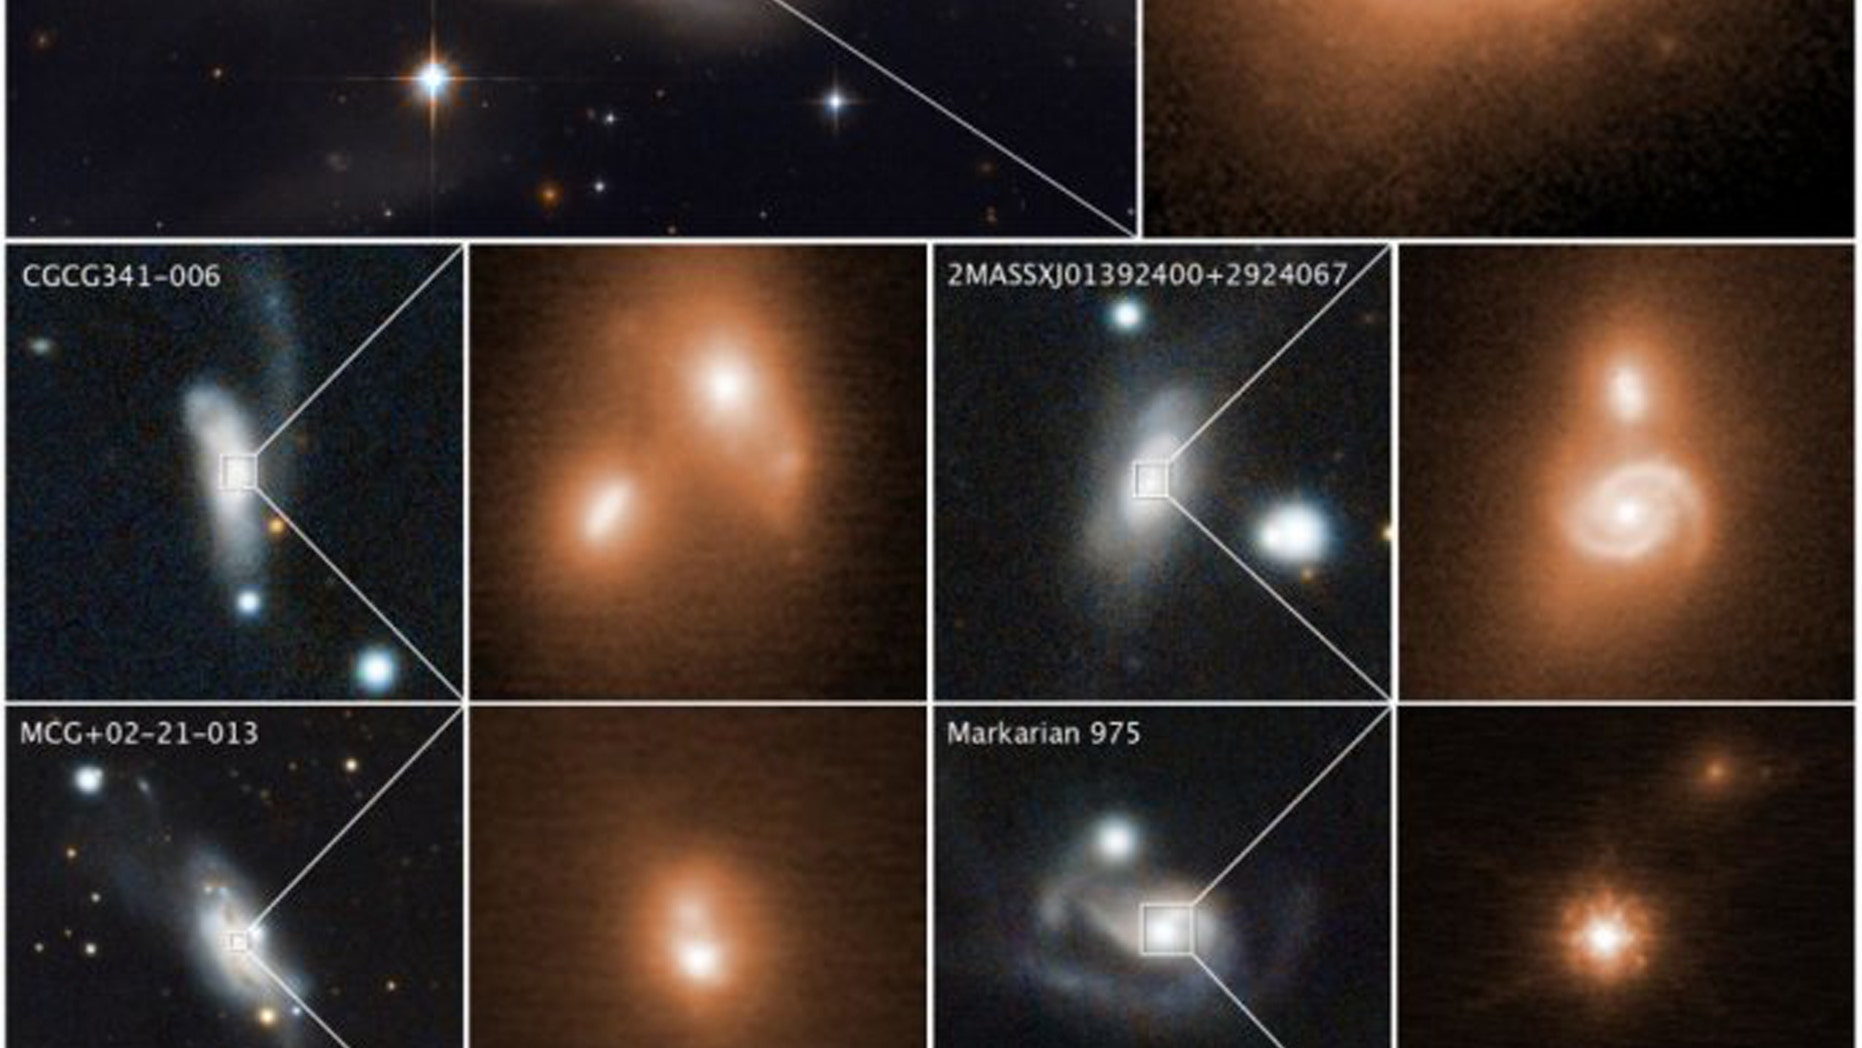 These images reveal the final stage of a union between pairs of galactic nuclei in the messy cores of colliding galaxies. Credit: NASA, ESA, and M. Koss (Eureka Scientific, Inc.)